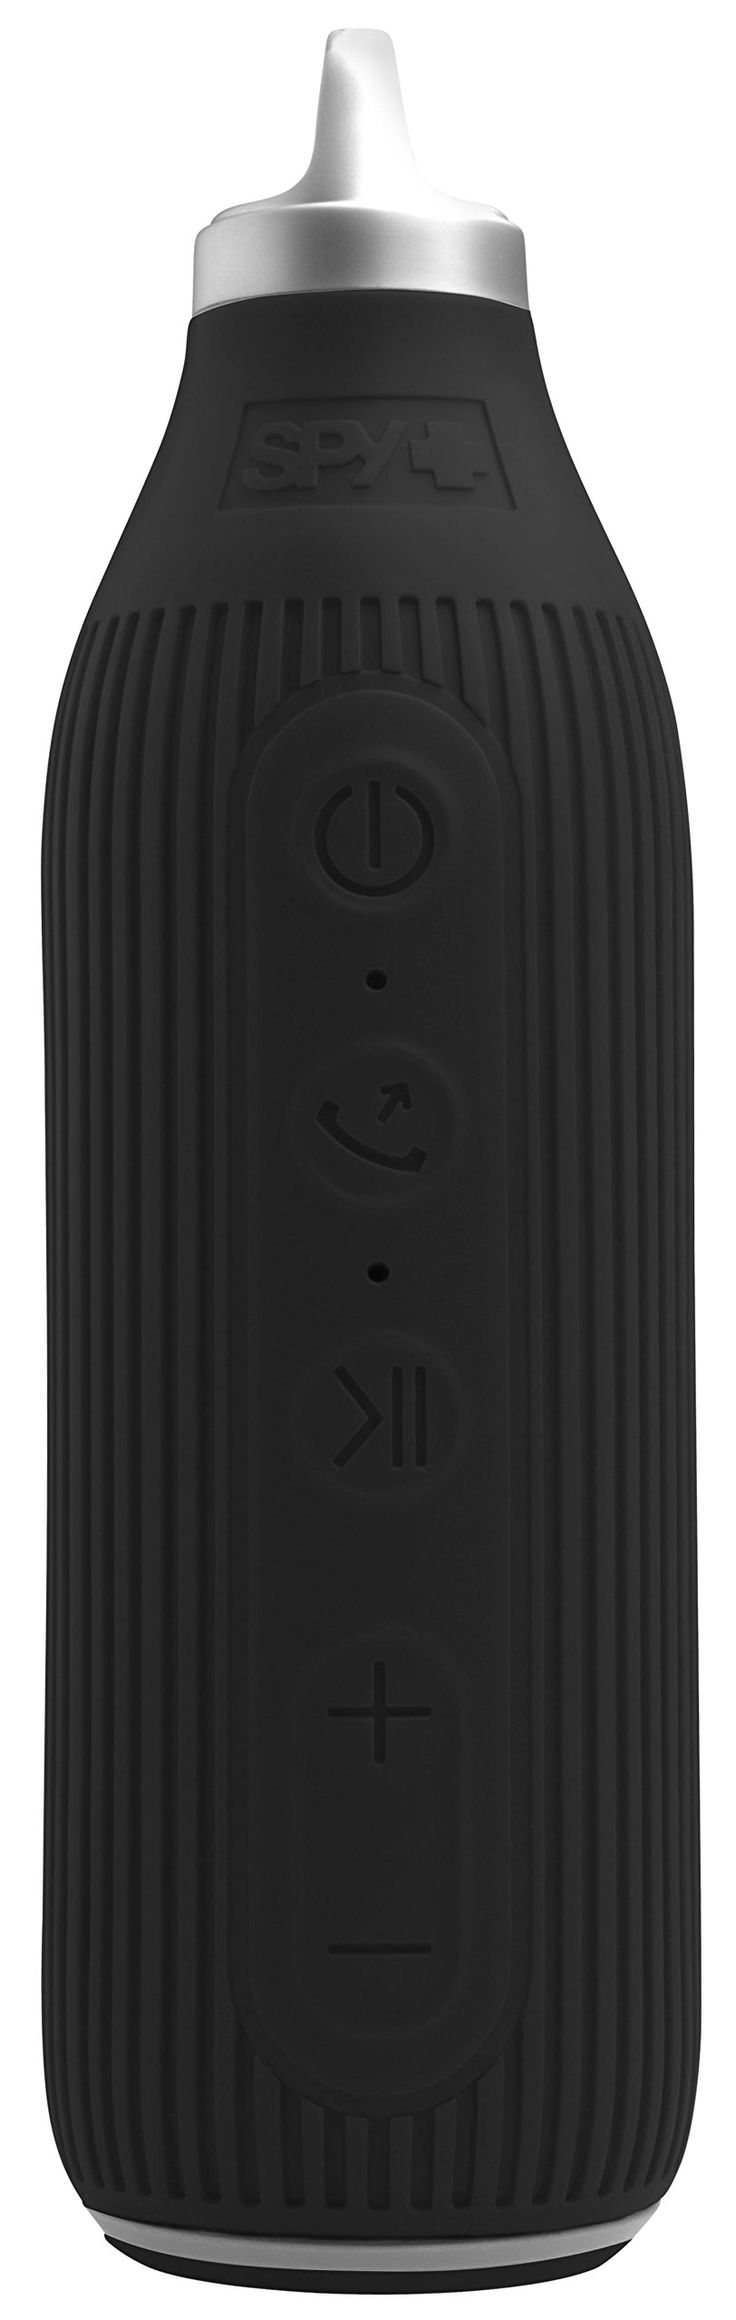 Spy THE BEACON Water-Resistant Bluetooth Speaker with Mic and Controls for Hands-Free Talking, Black. IPX6 water-resistant; 1.2 meters drop-proof. Dual 400mm speaker drivers; Dual passive radiator for enhanced bass and superior sound quality; Rated power 6W; 360 degree surround stereo sound. Molded outer silicone shell for increased durability; Mic and speakerphone for hands-free talking. Built-in 2200 mAh class A high capacity rechargeable lithium battery; 15 Hours of continuous music...